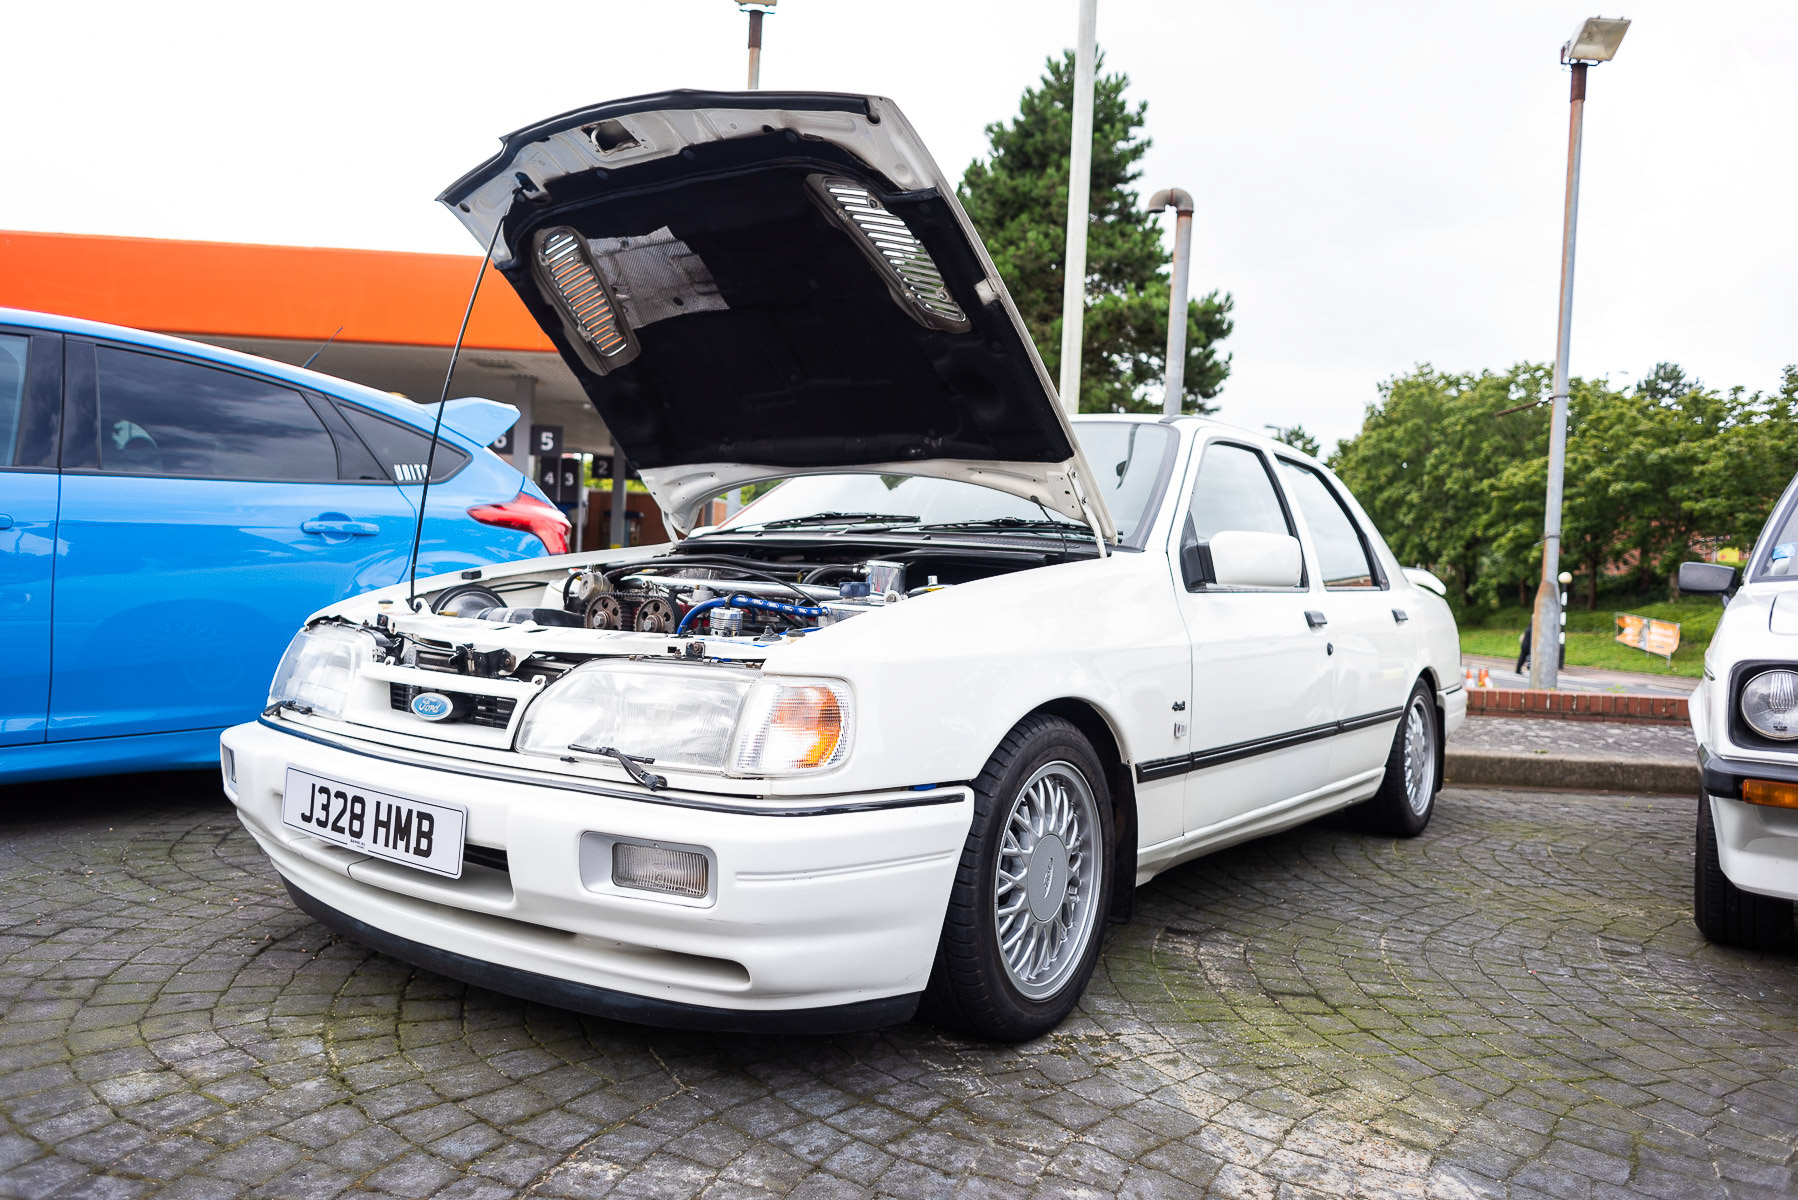 Ford Cosworth Sapphire